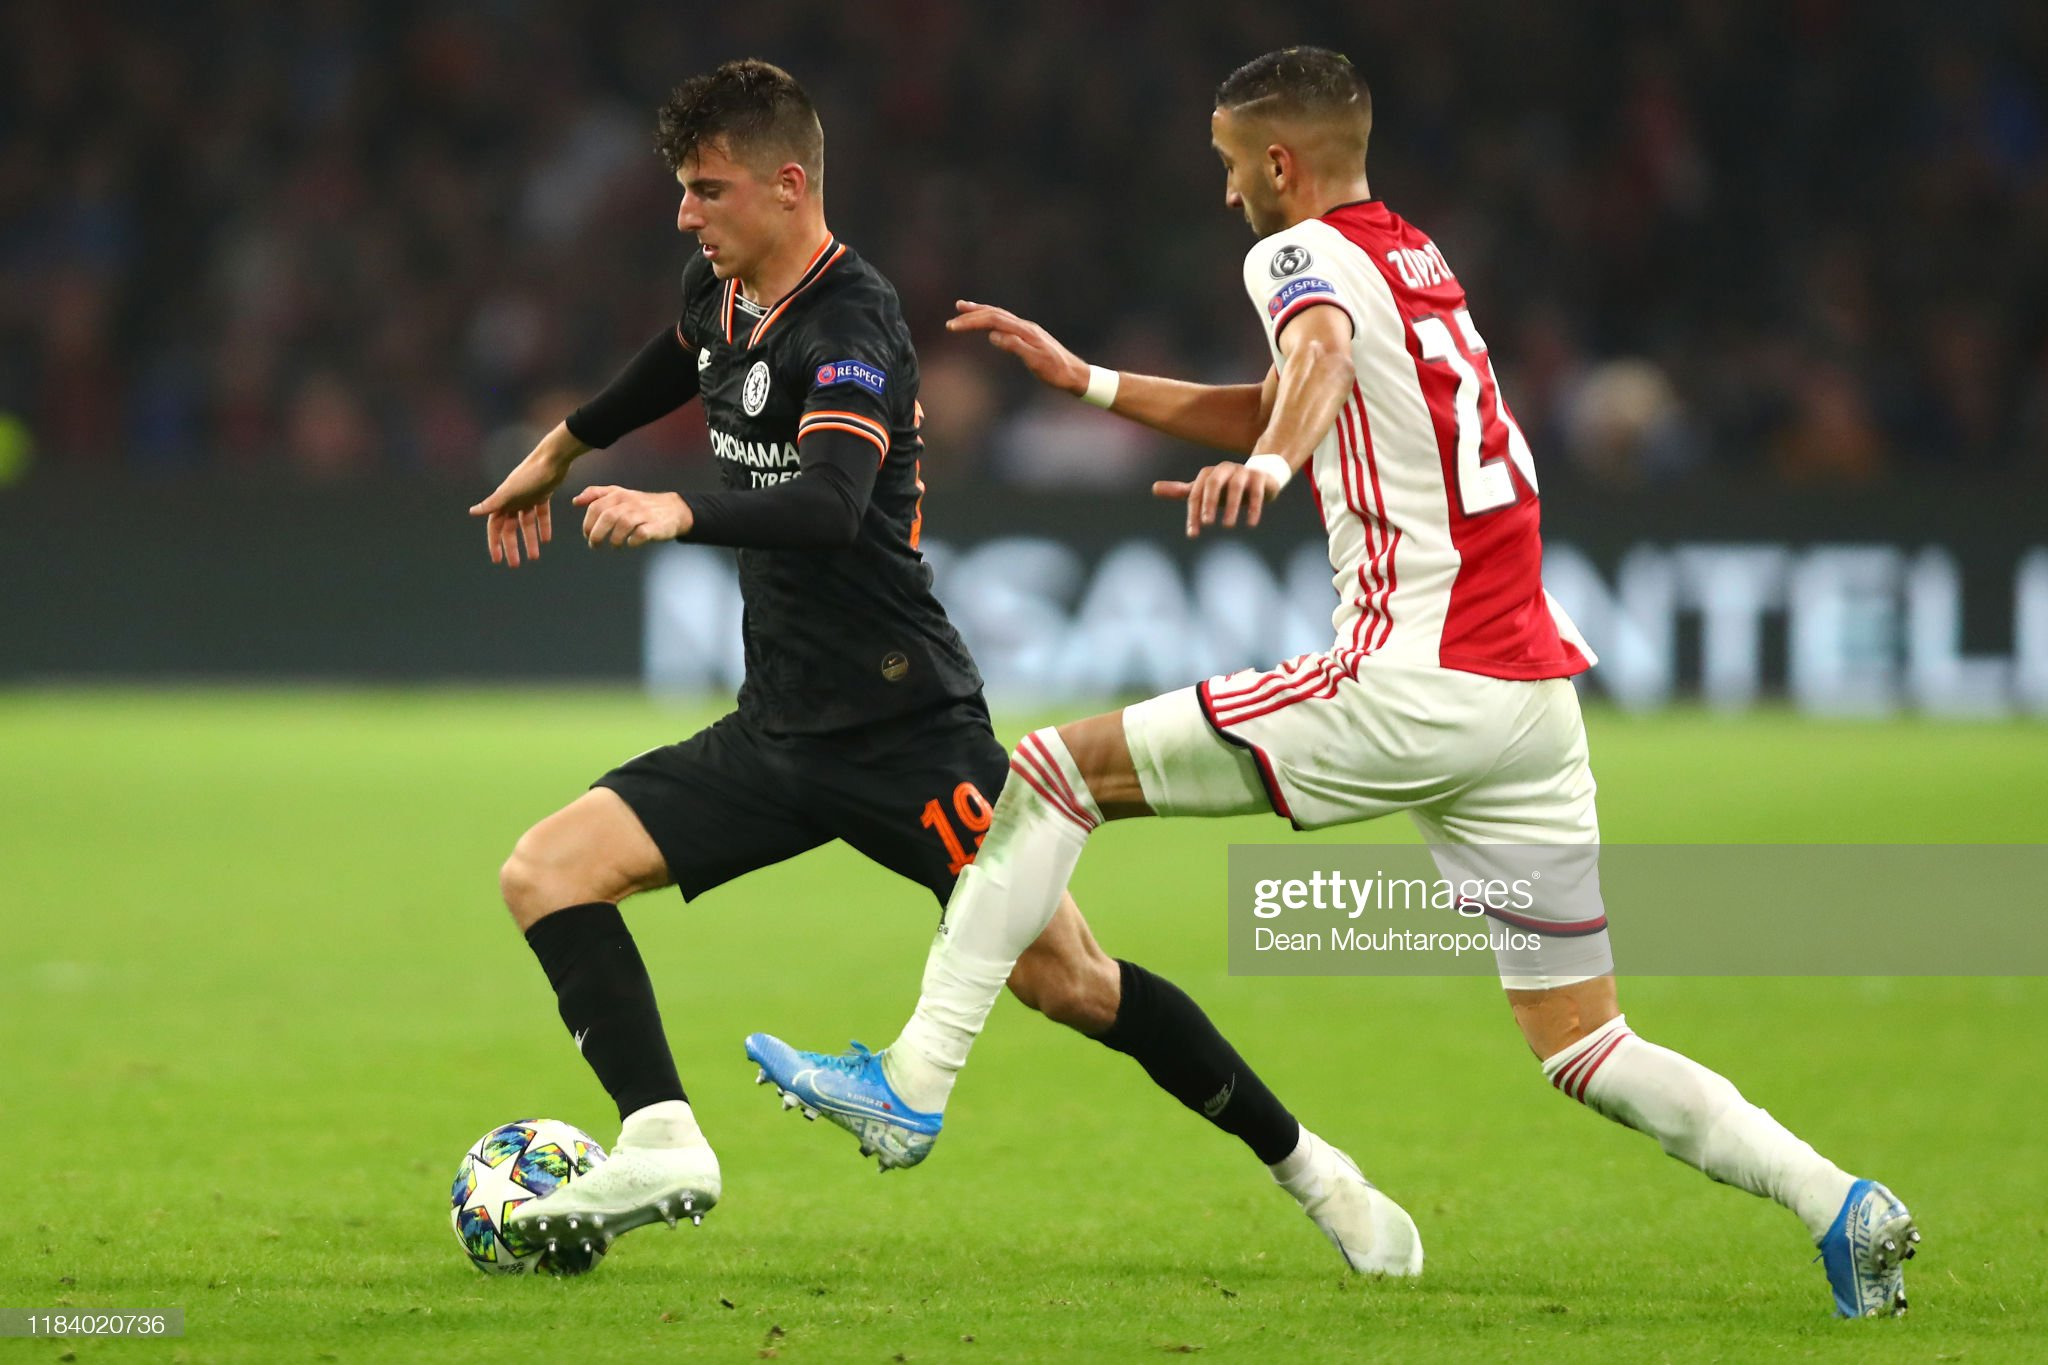 Chelsea v Ajax preview, prediction and odds